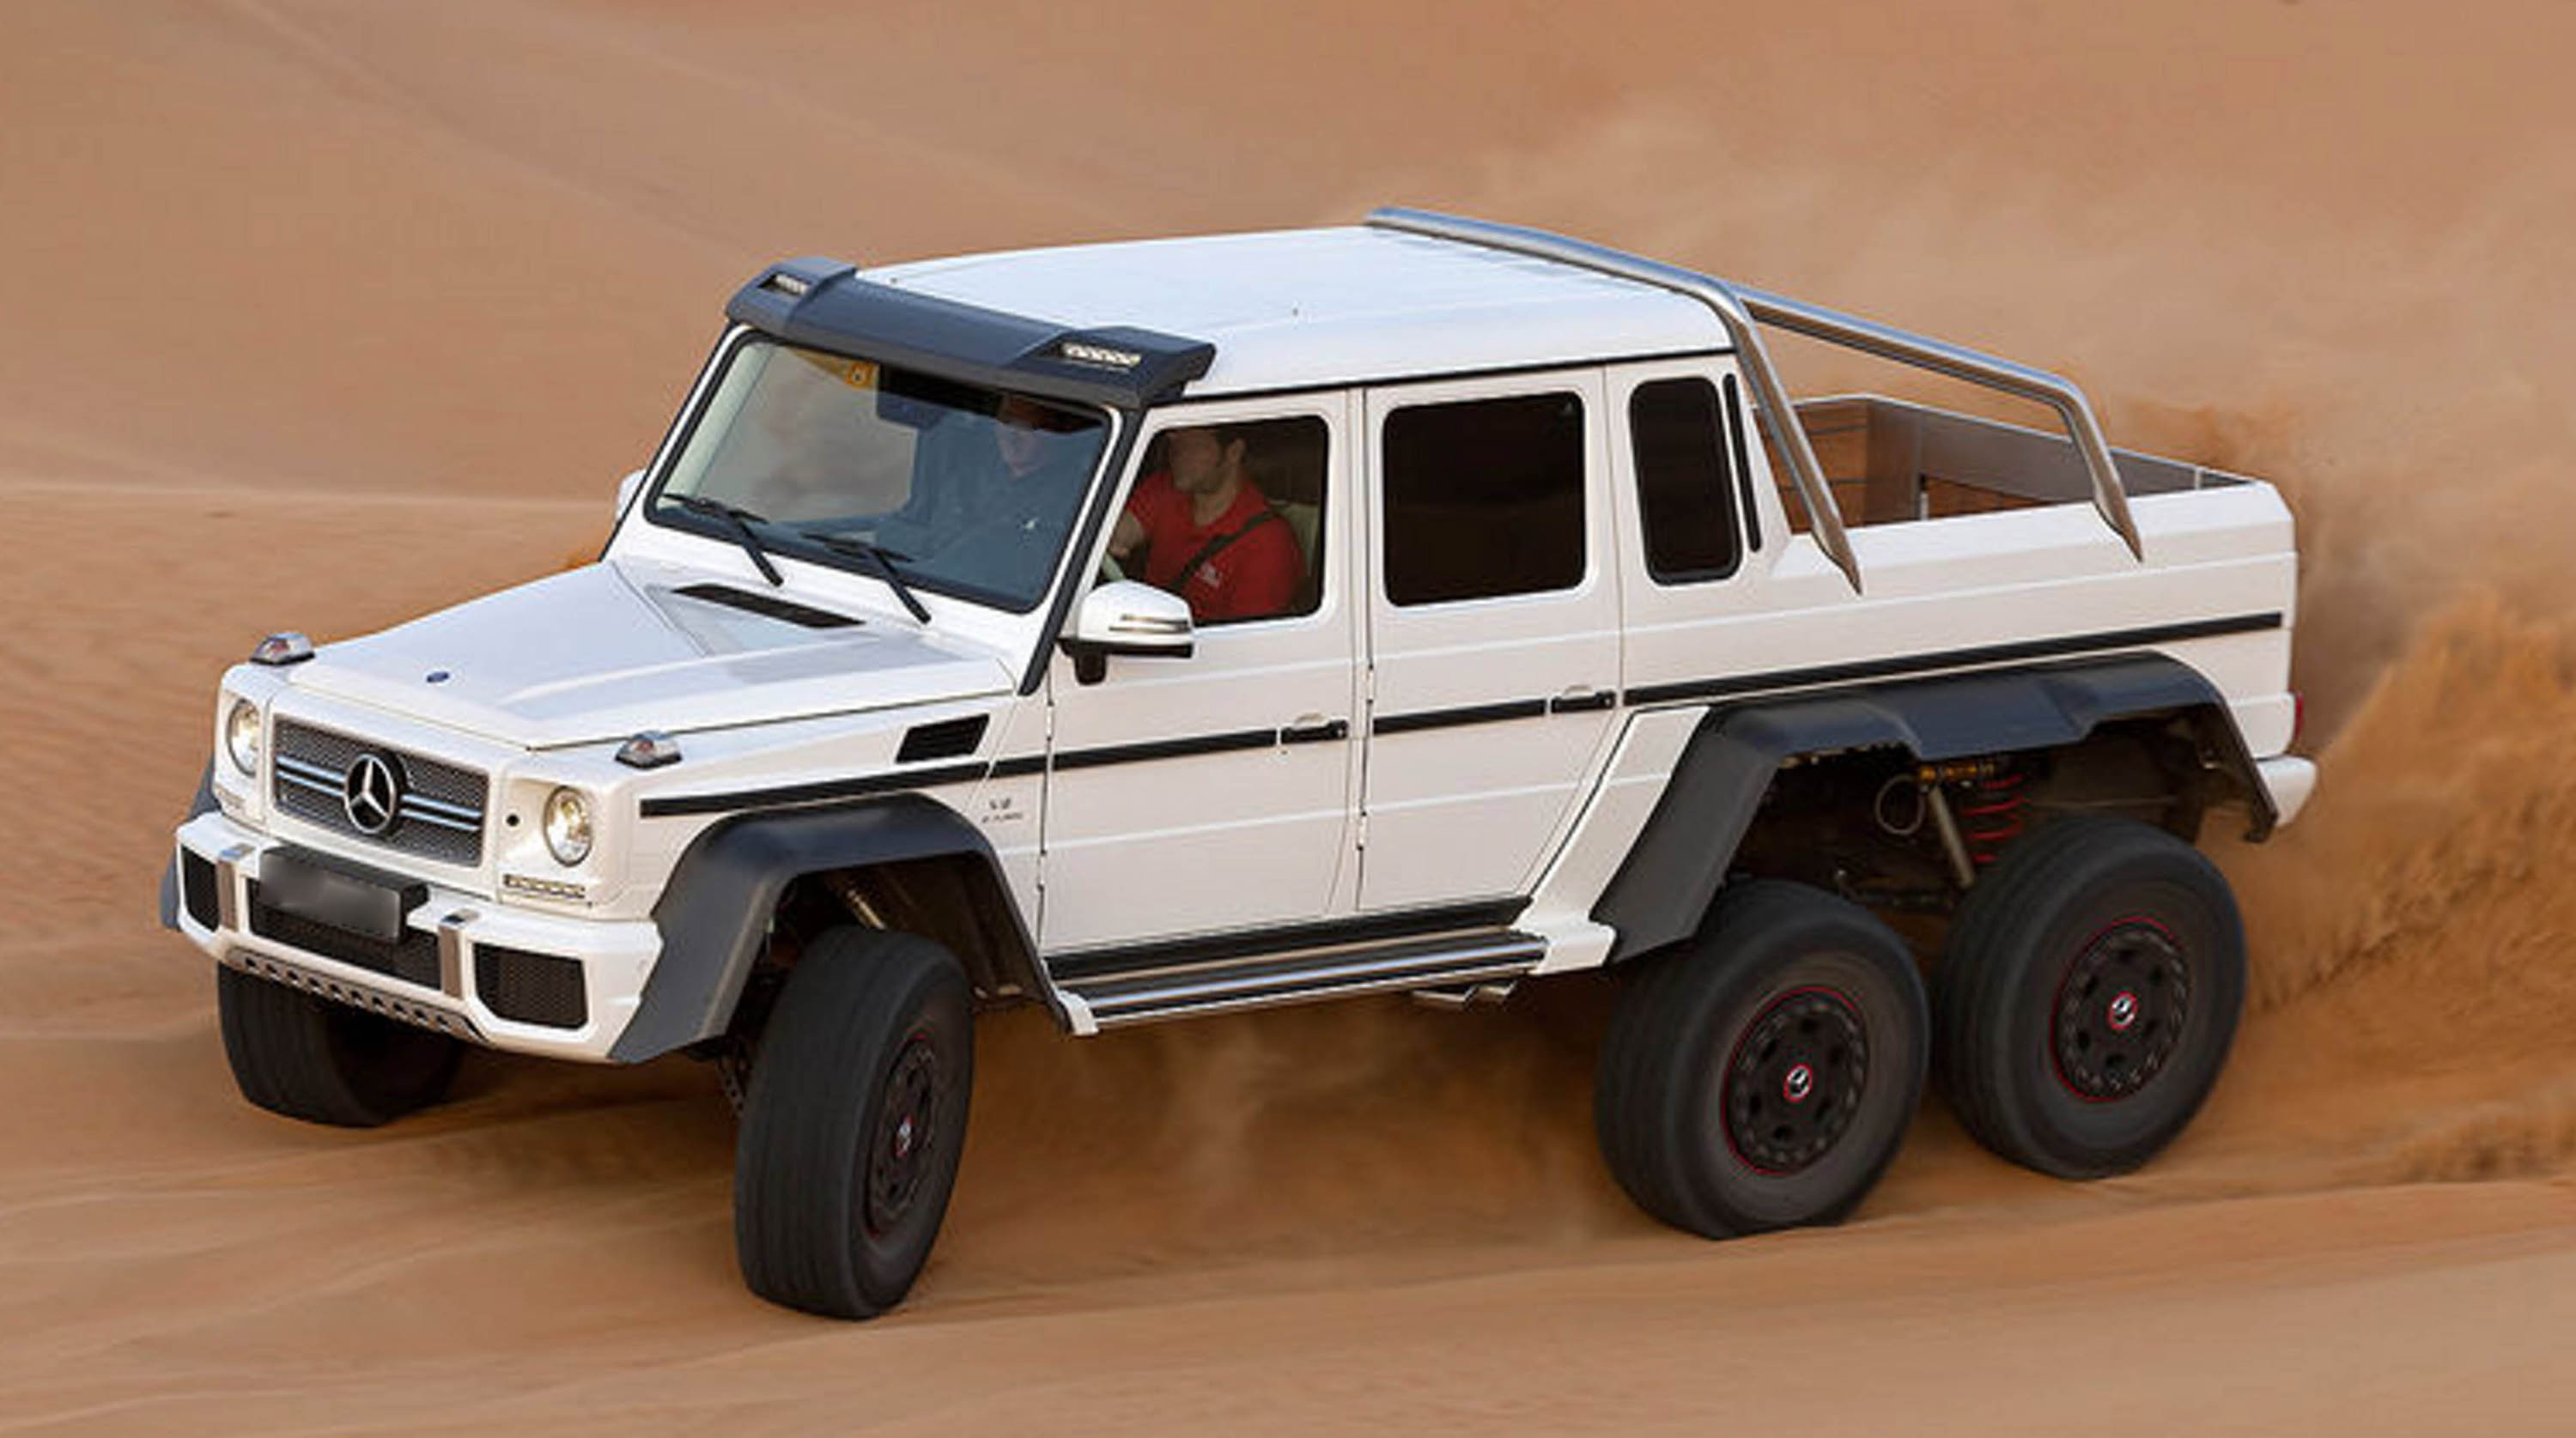 mercedes g63 amg 6x6 mega engineering vehicle. Black Bedroom Furniture Sets. Home Design Ideas